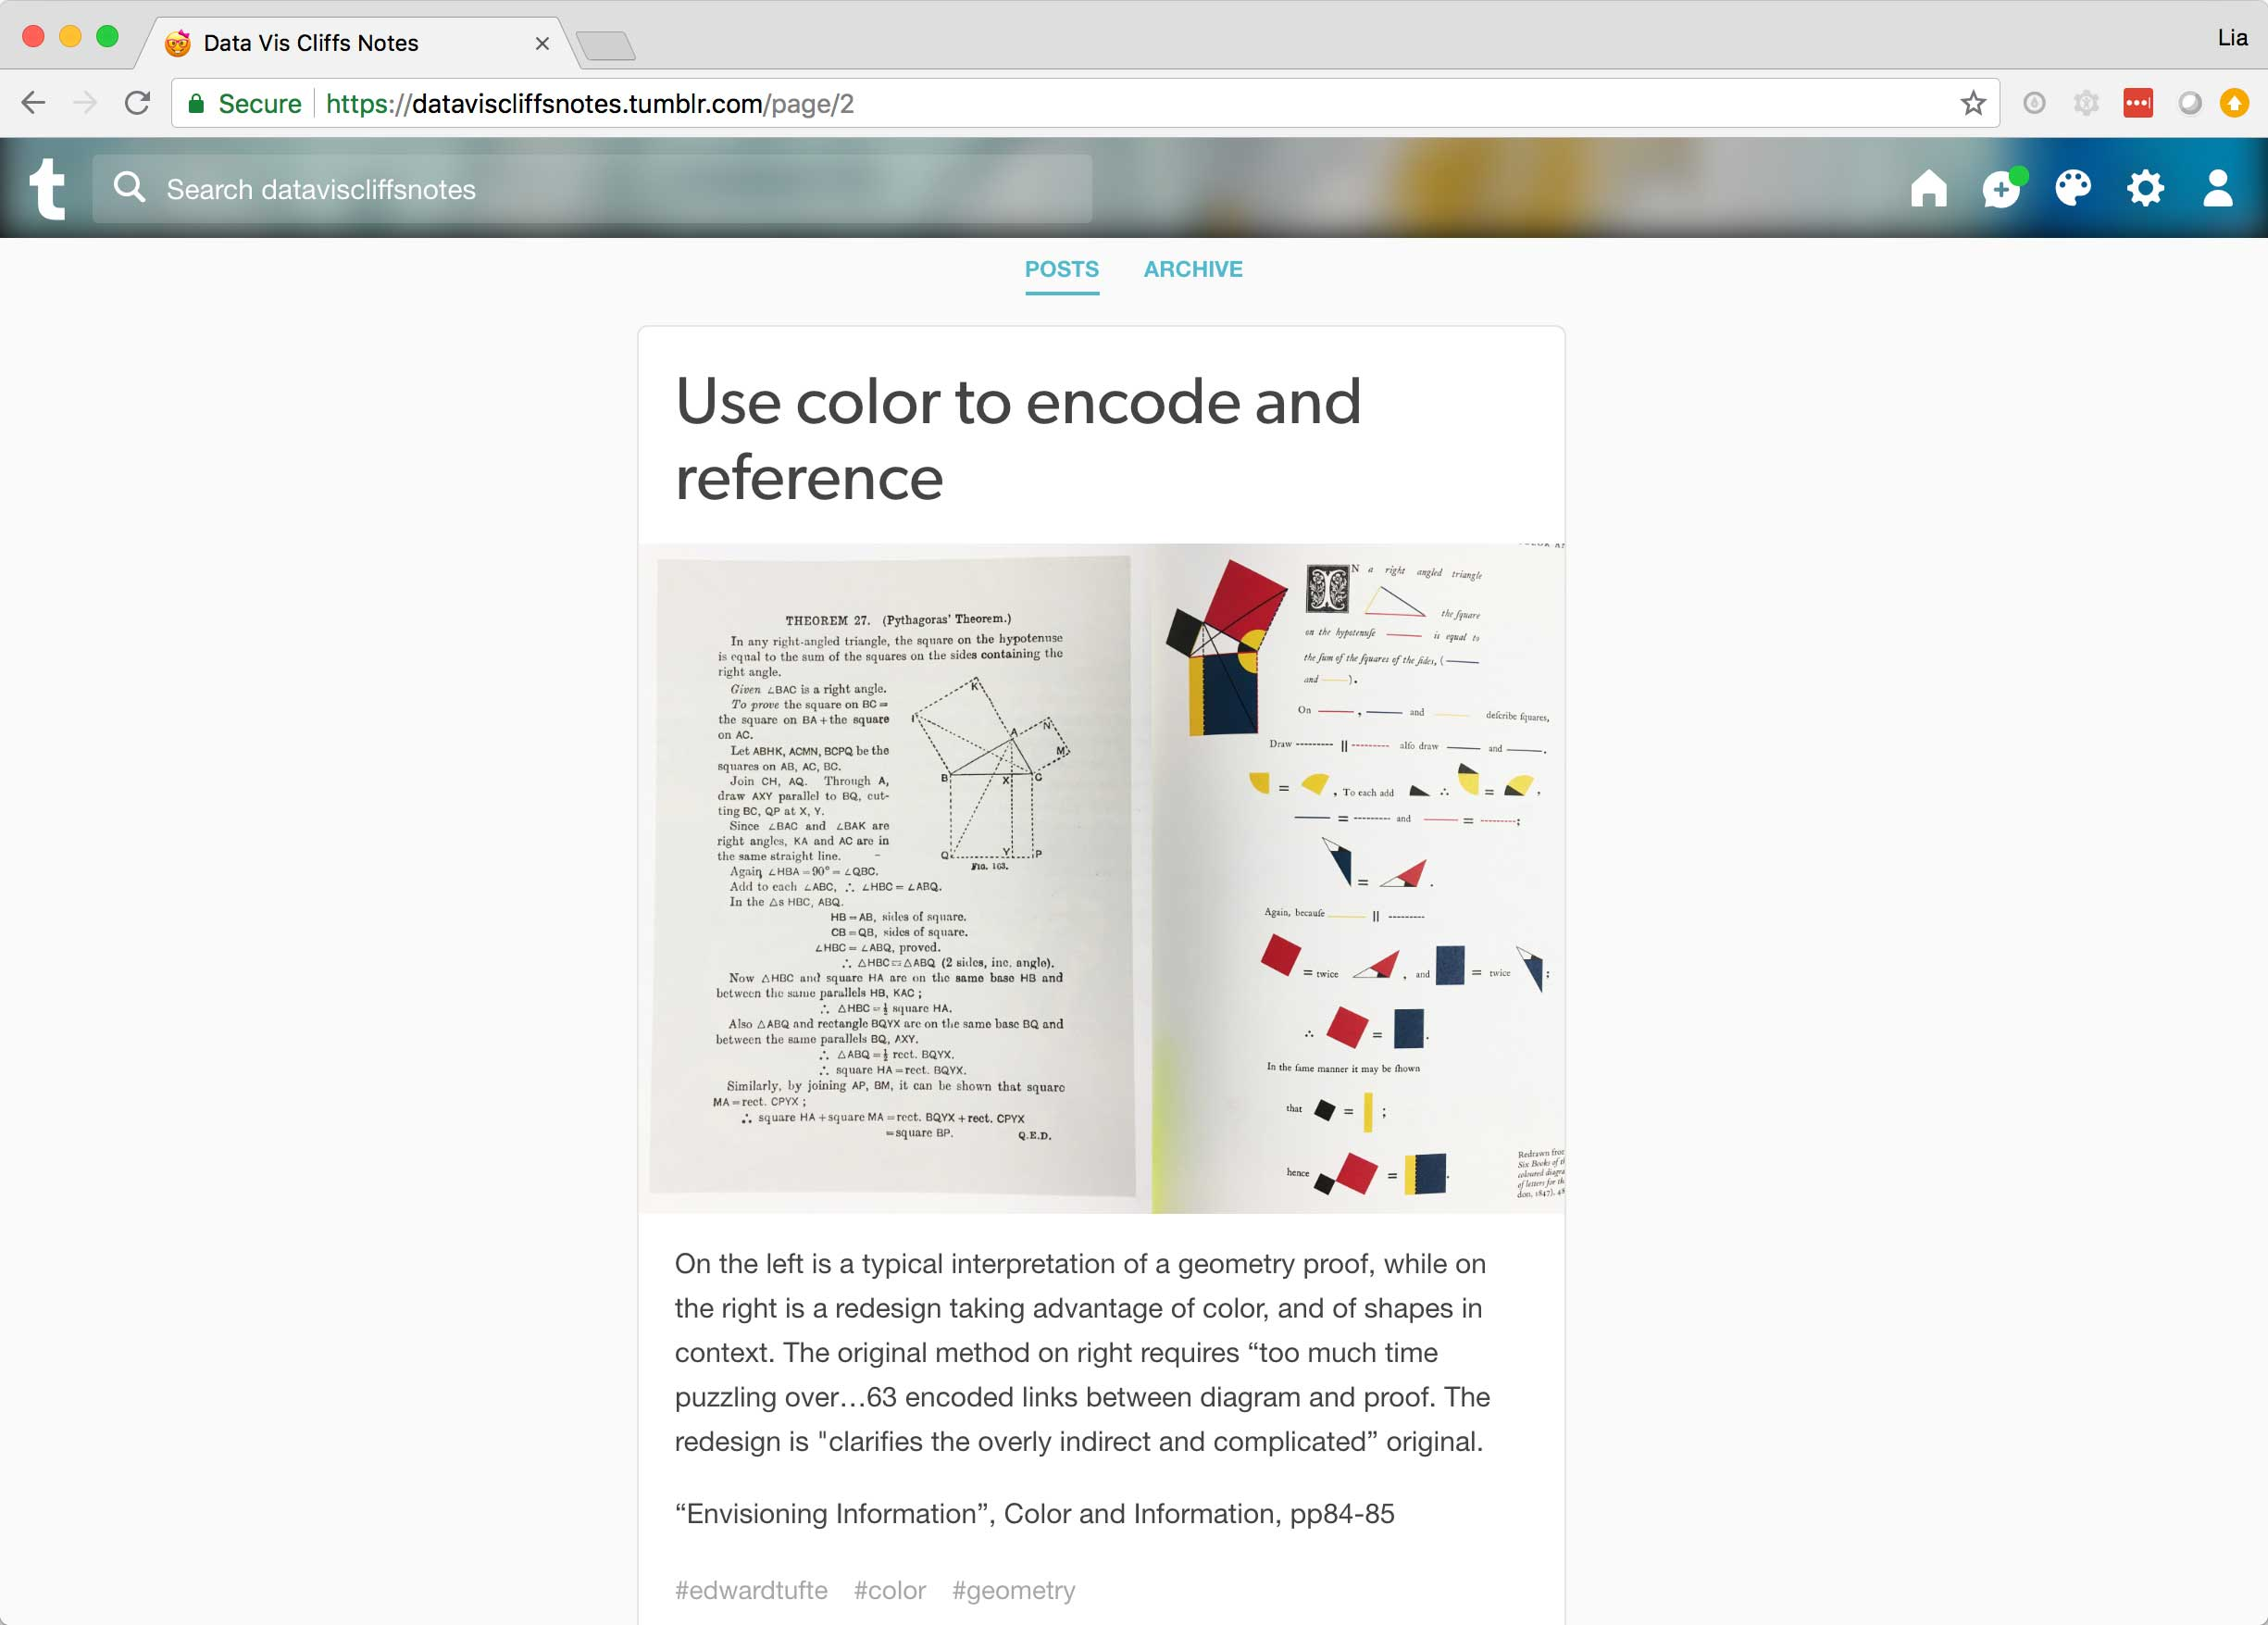 An example post about using color to encode diagrams and any associated content.